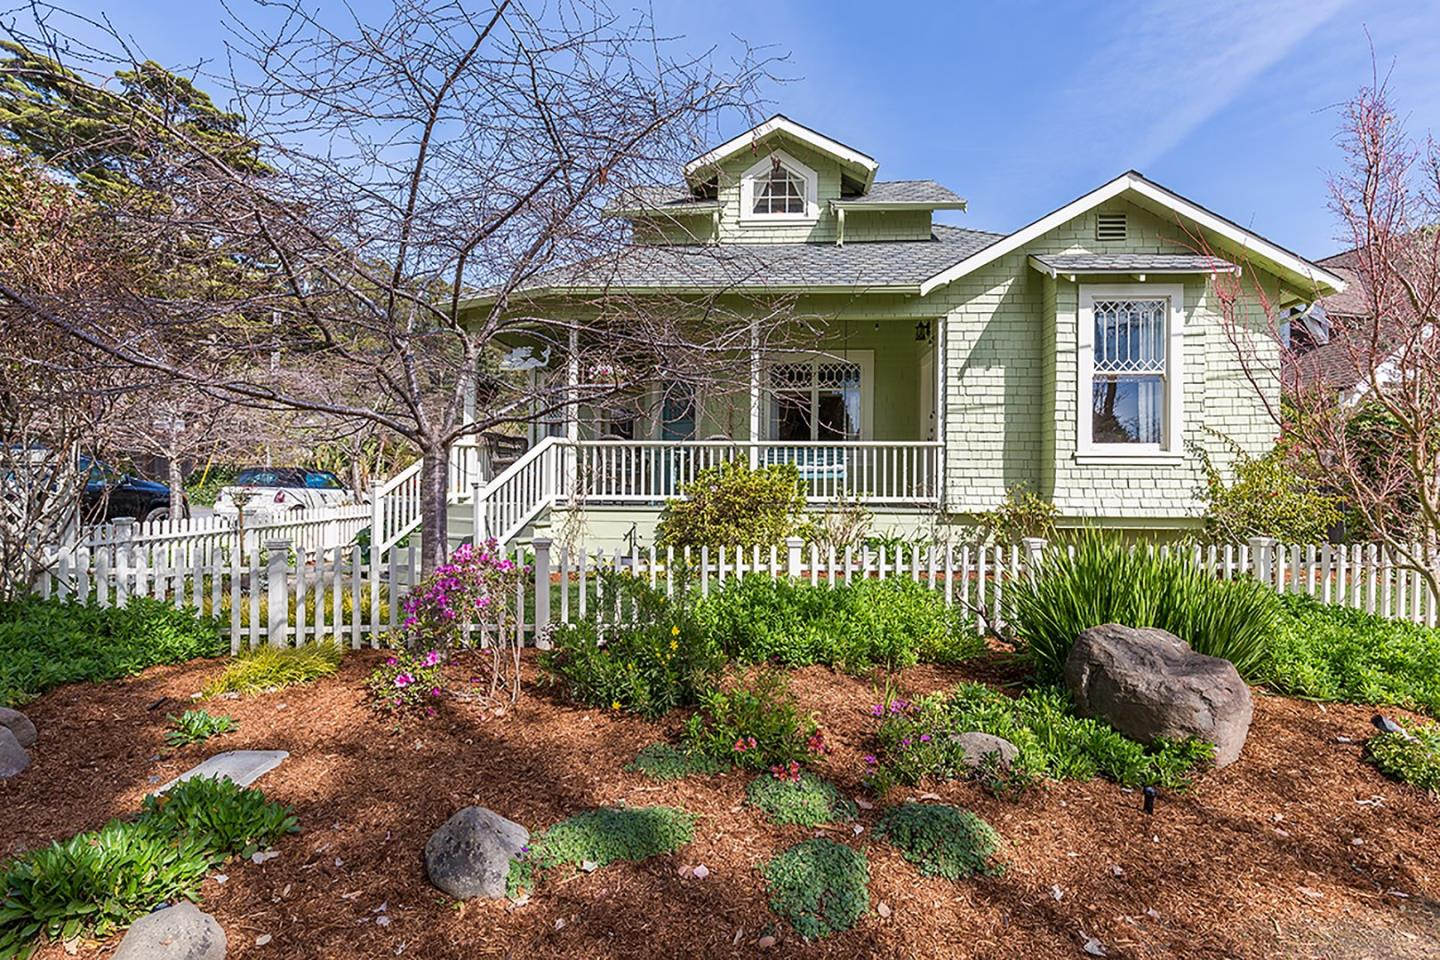 Single Family Home for Sale at 212 Hollister Avenue 212 Hollister Avenue Capitola, California 95010 United States